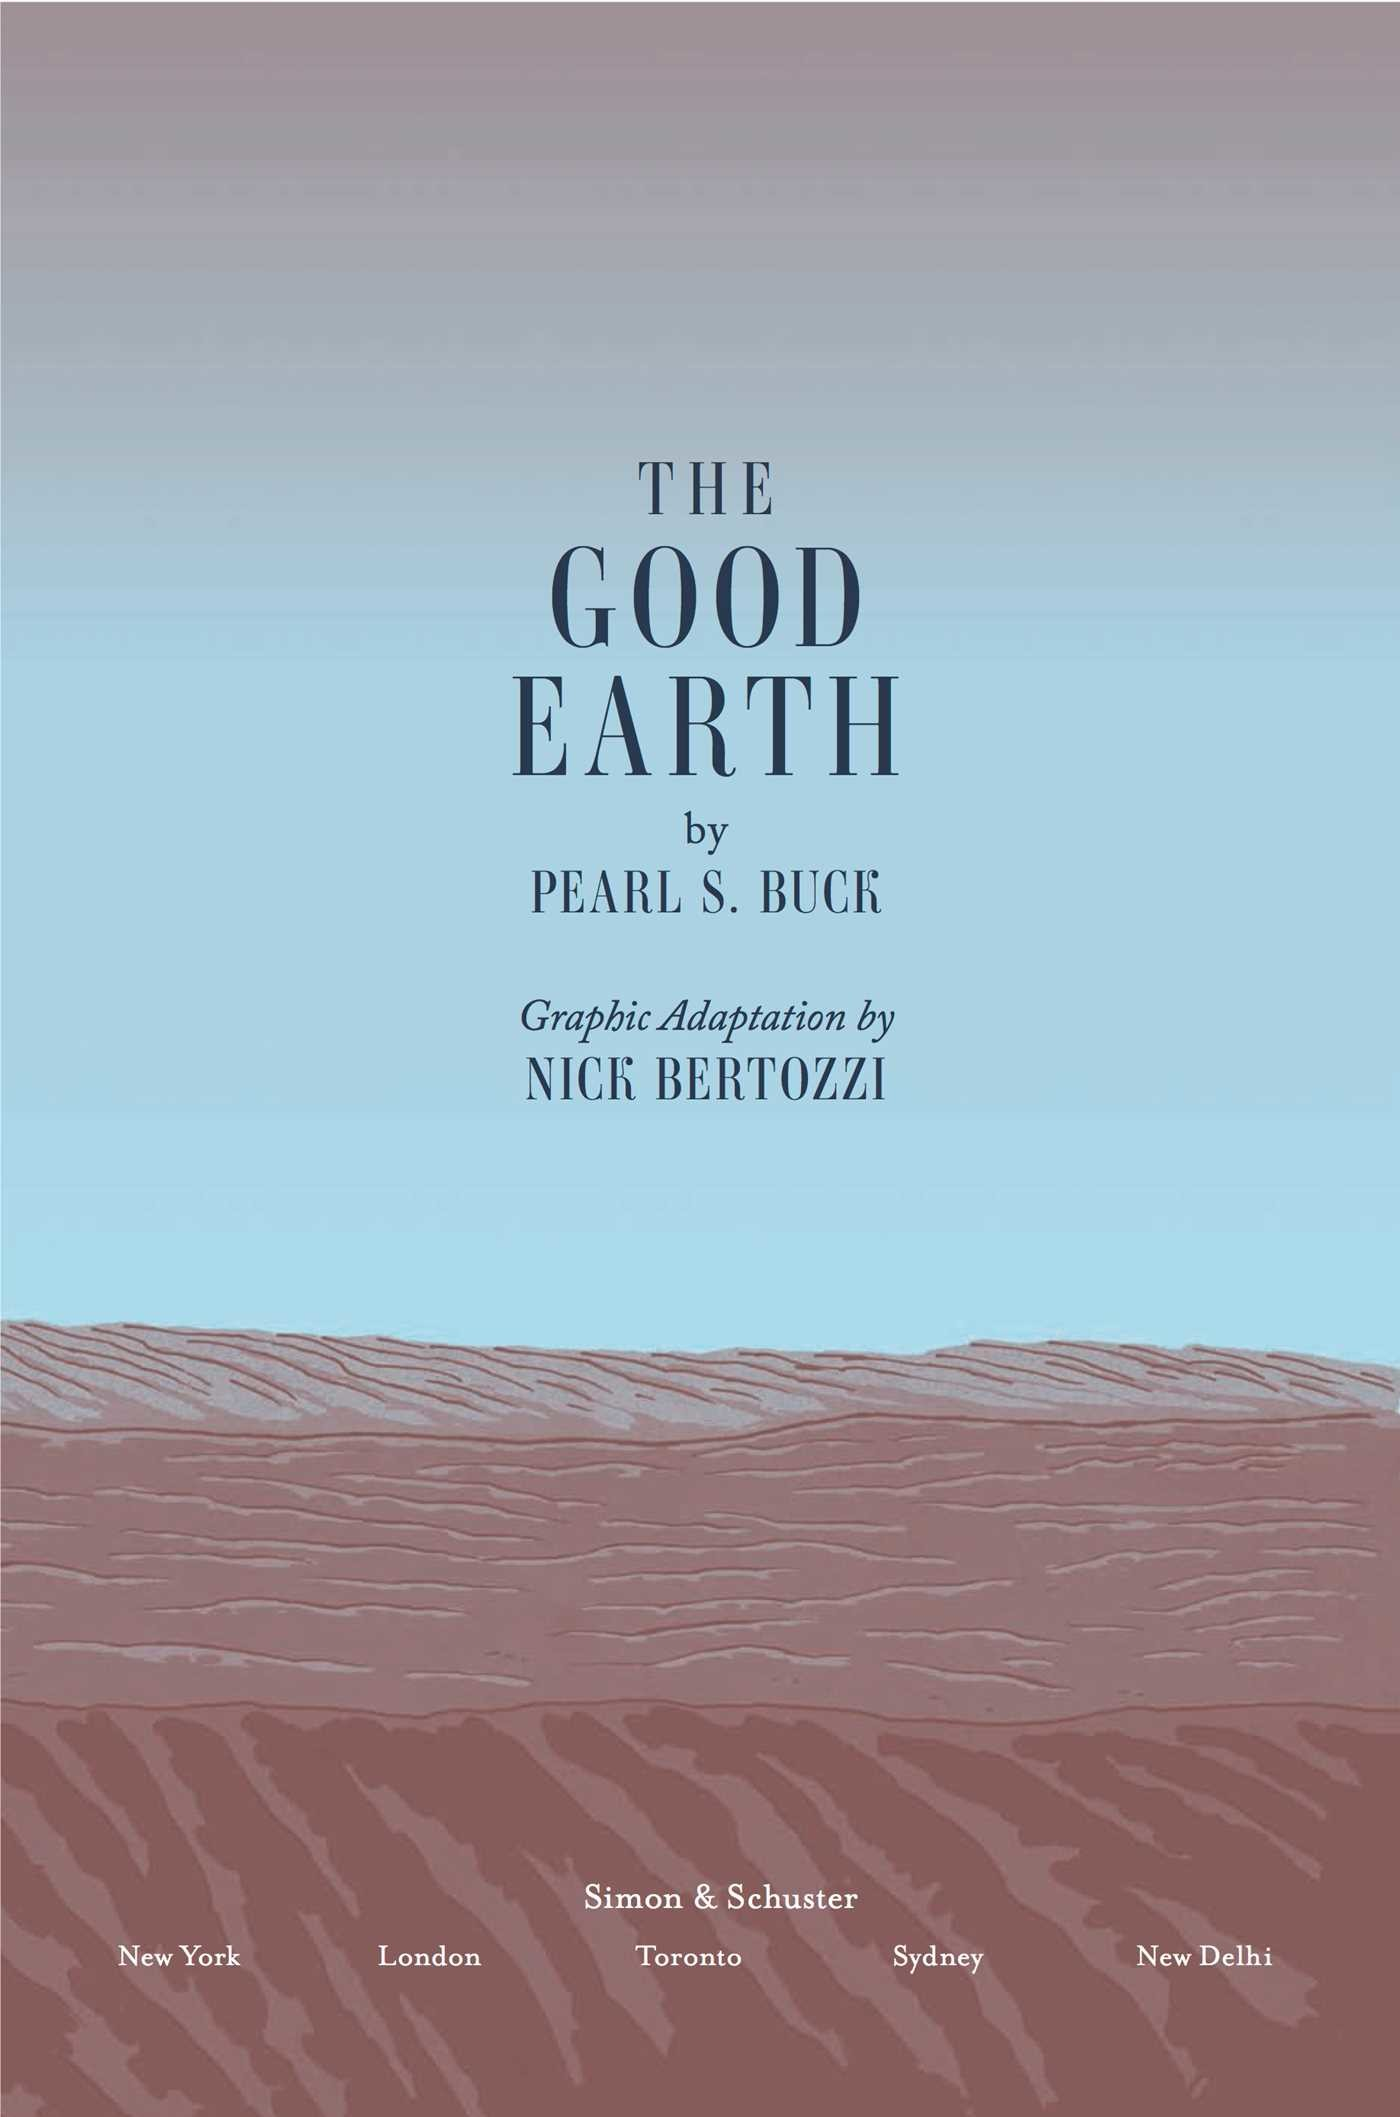 The good earth 9781501132766.in01